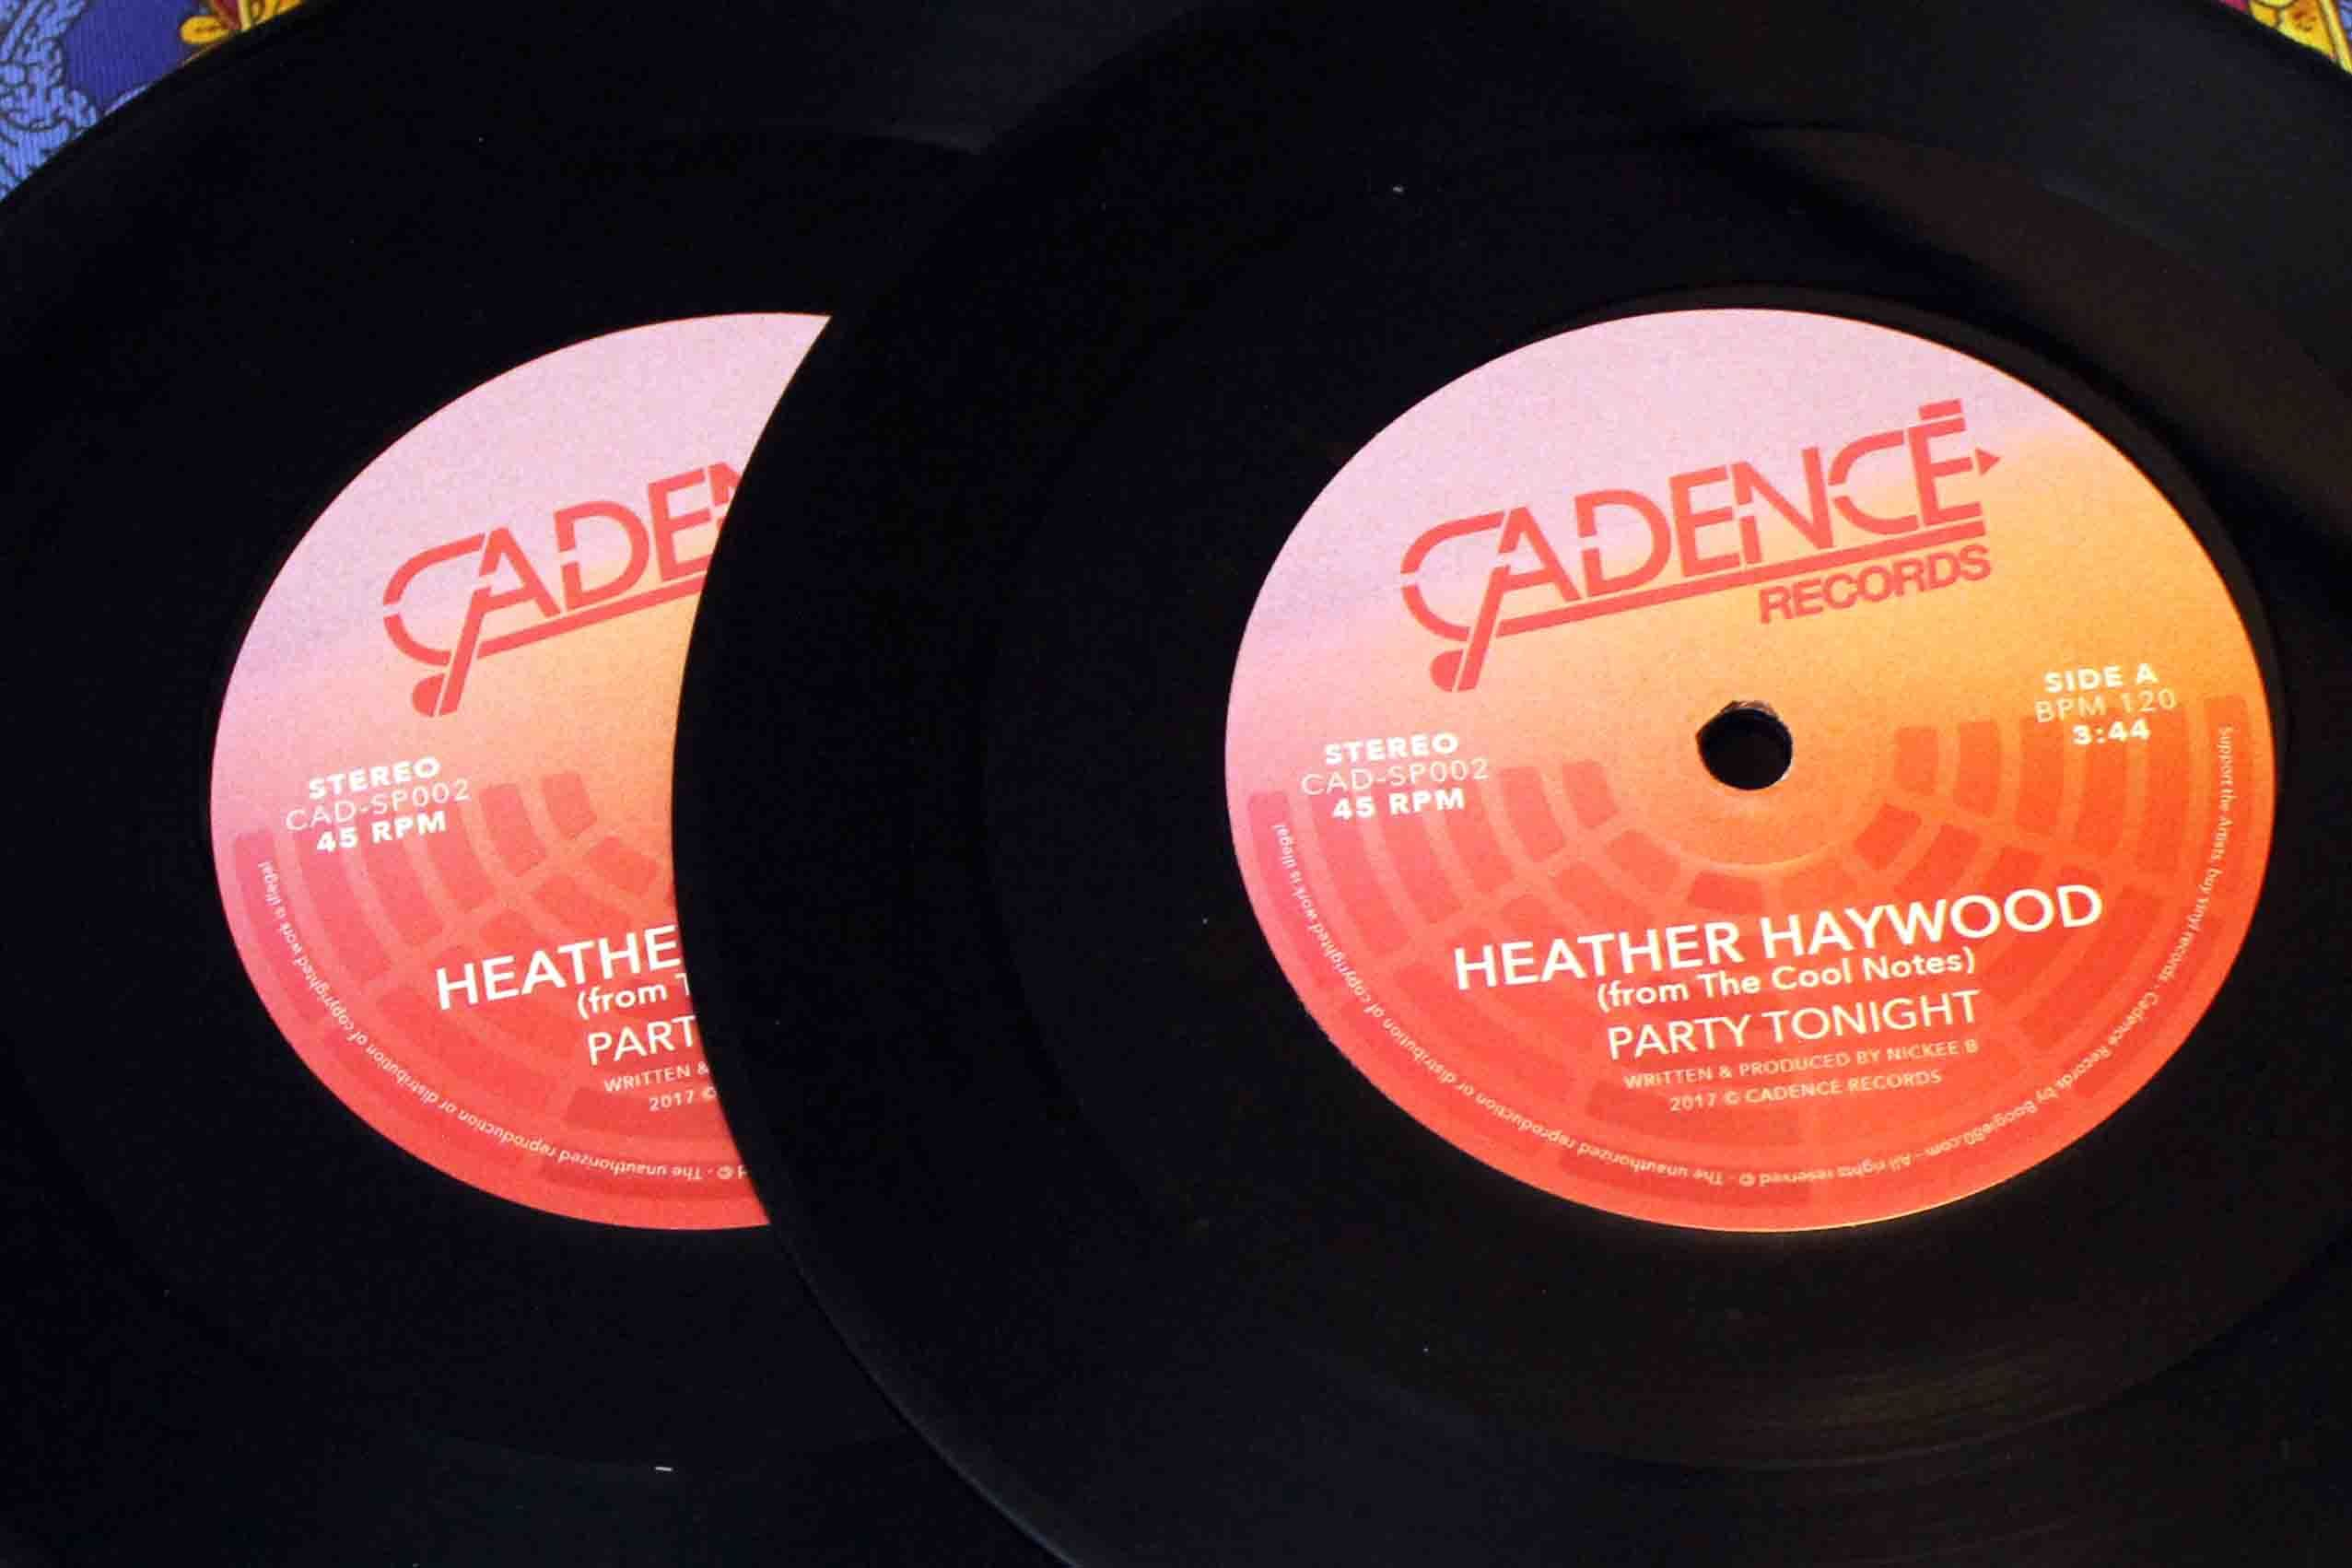 Heather Haywood From The Cool Notes – Party Tonight 0000